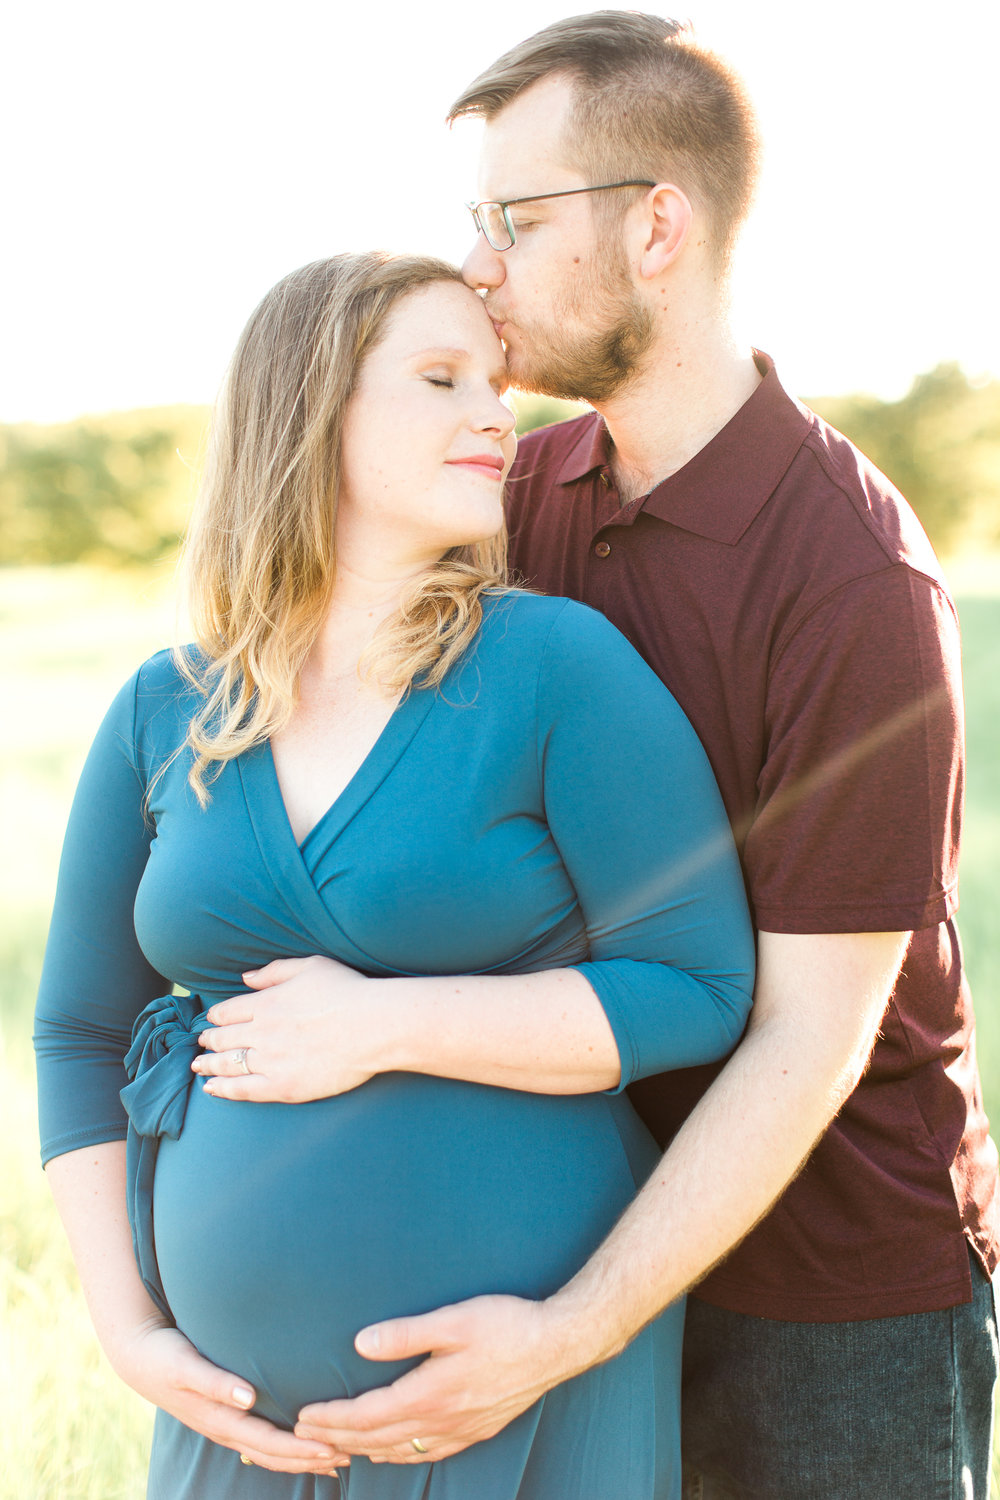 83d10-dallas_texas_maternity_session-16.jpg